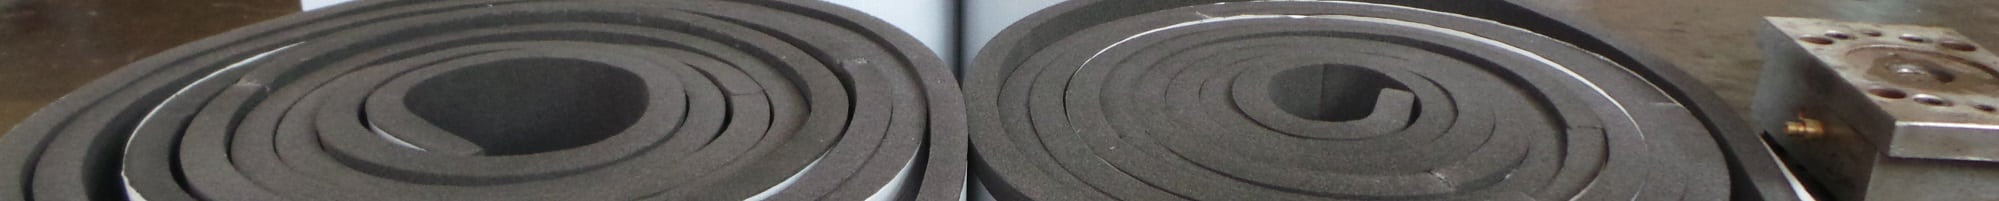 foam sponge rubber